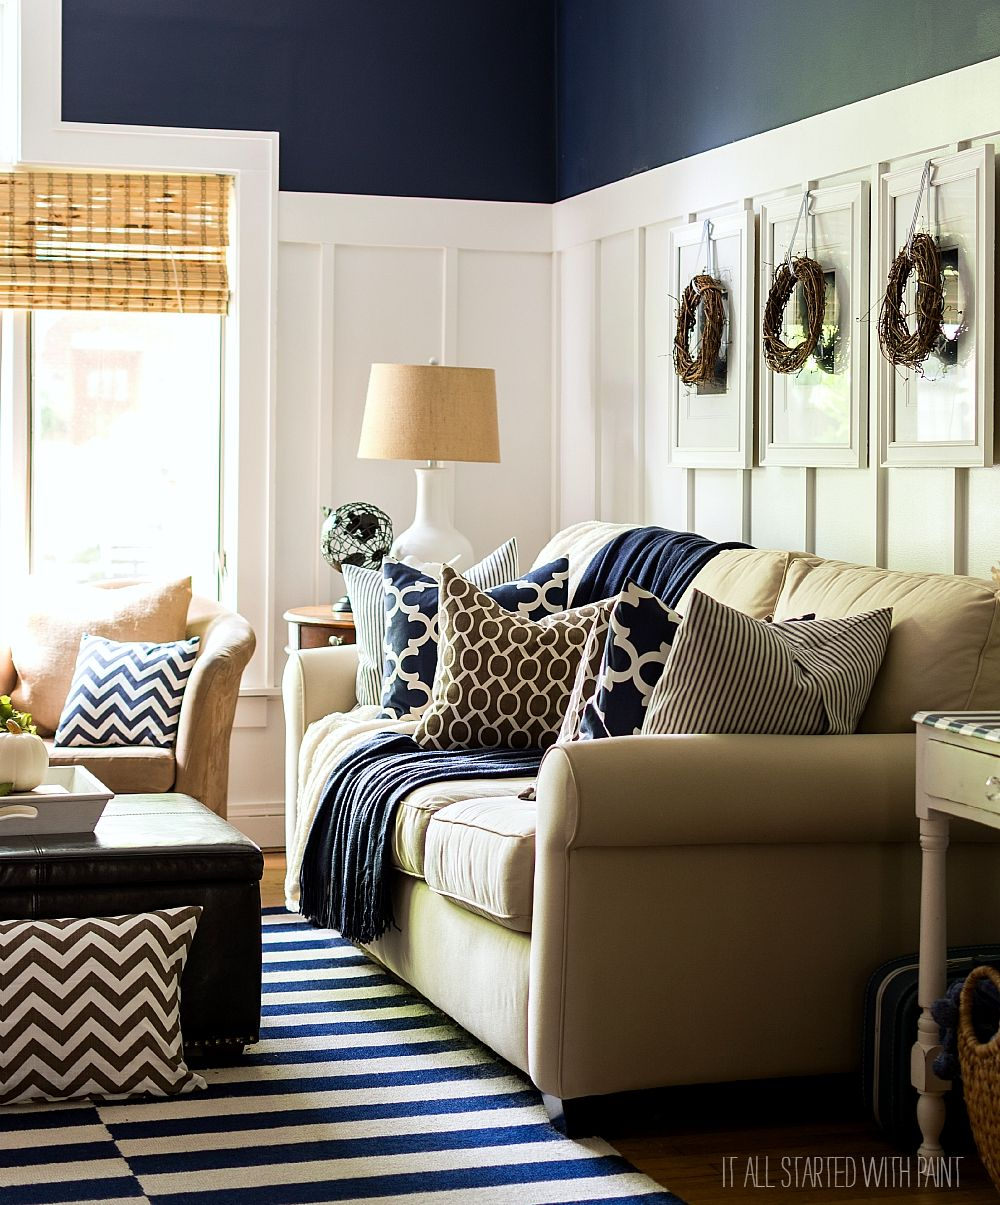 Fall decorating ideas using brown and navy neutrals board and batten living room decorated for fall